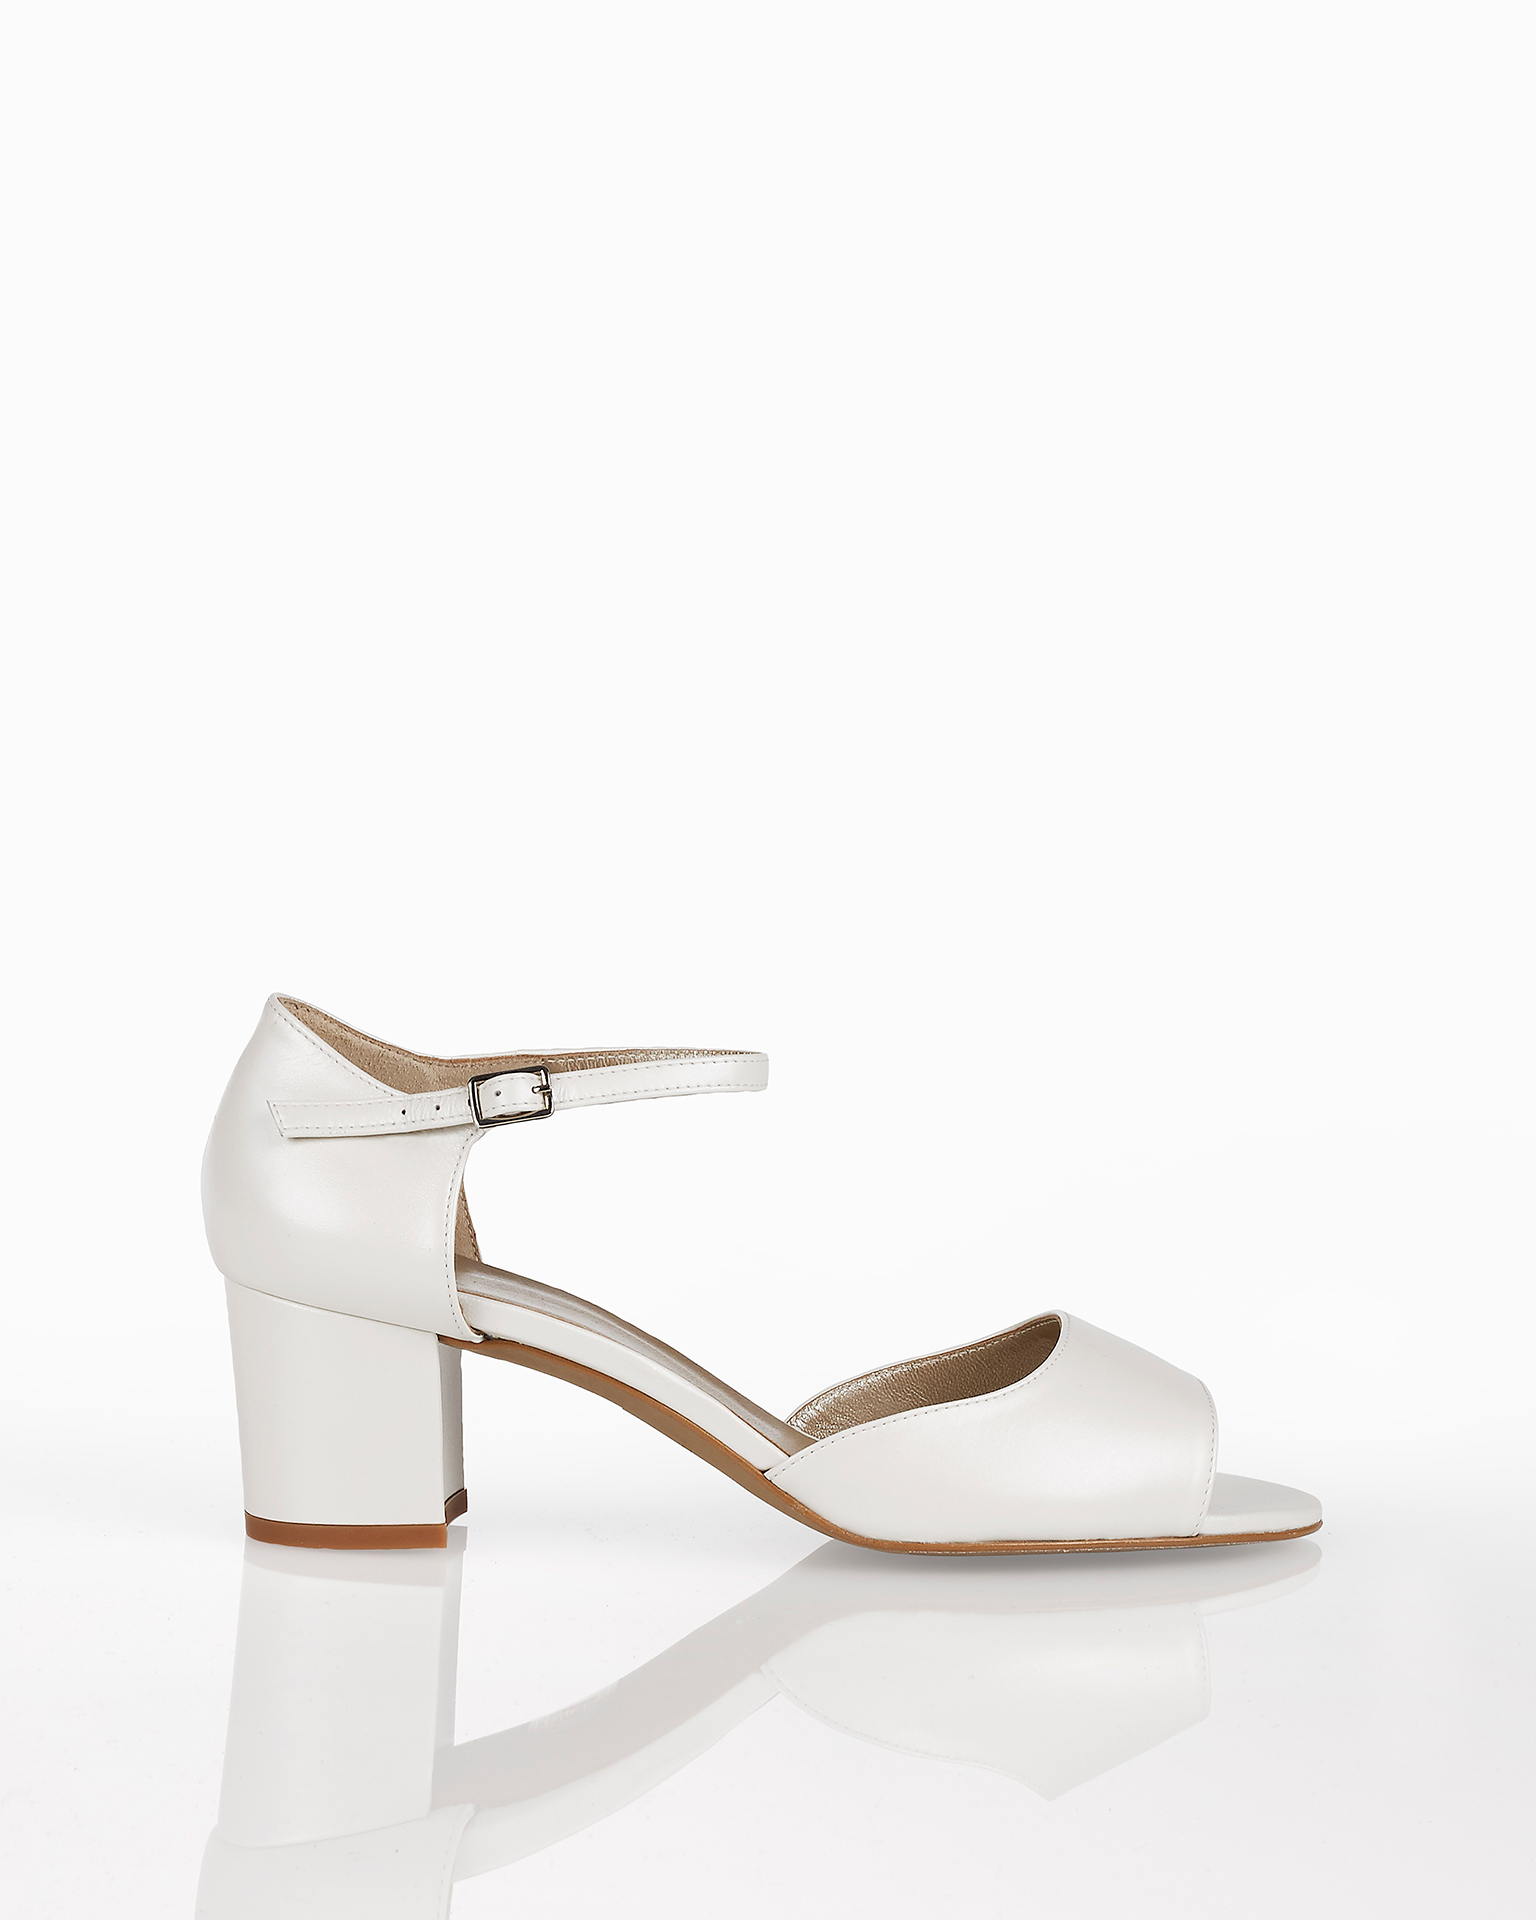 Leather bridal sandals with closed low heel, available in natural, nude, gold and silver. 2018 AIRE BARCELONA Collection.